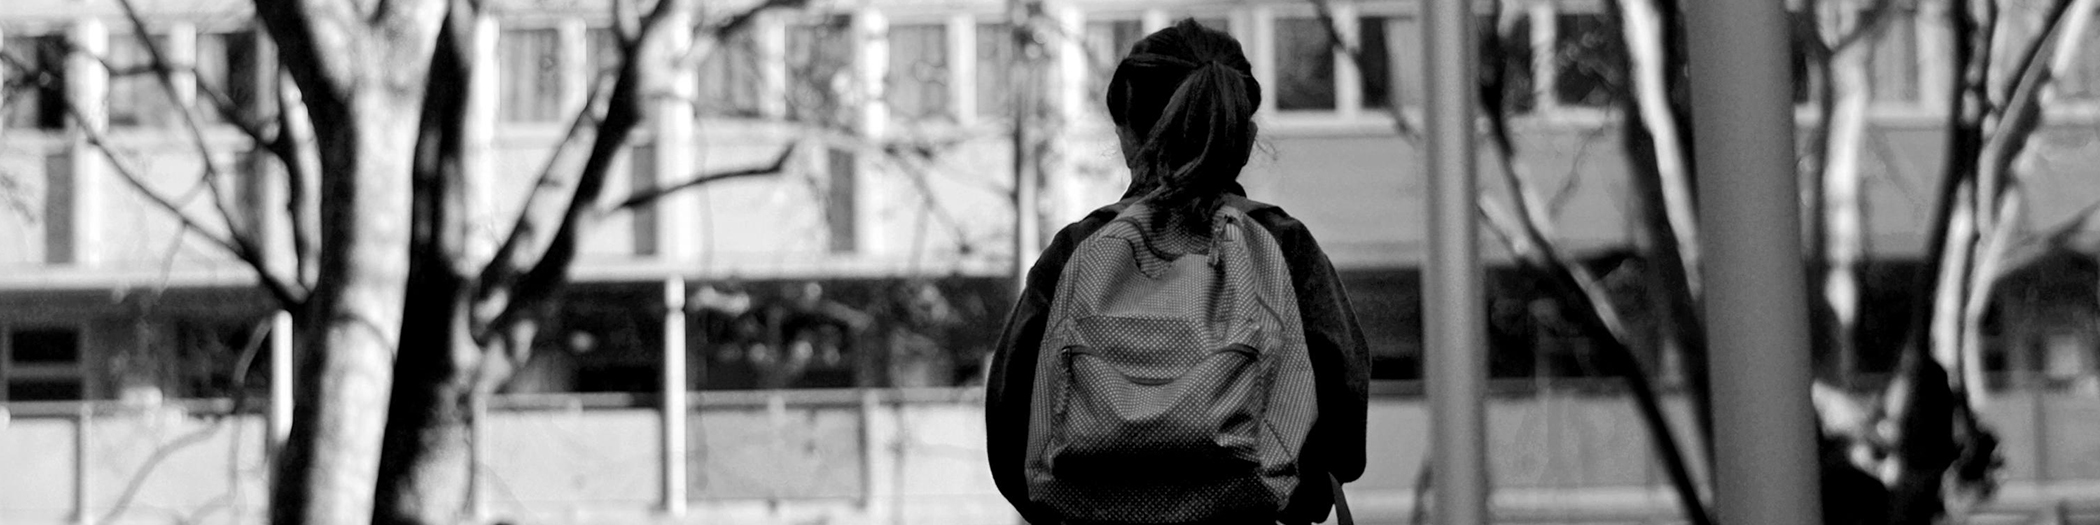 Girl with backpack banner